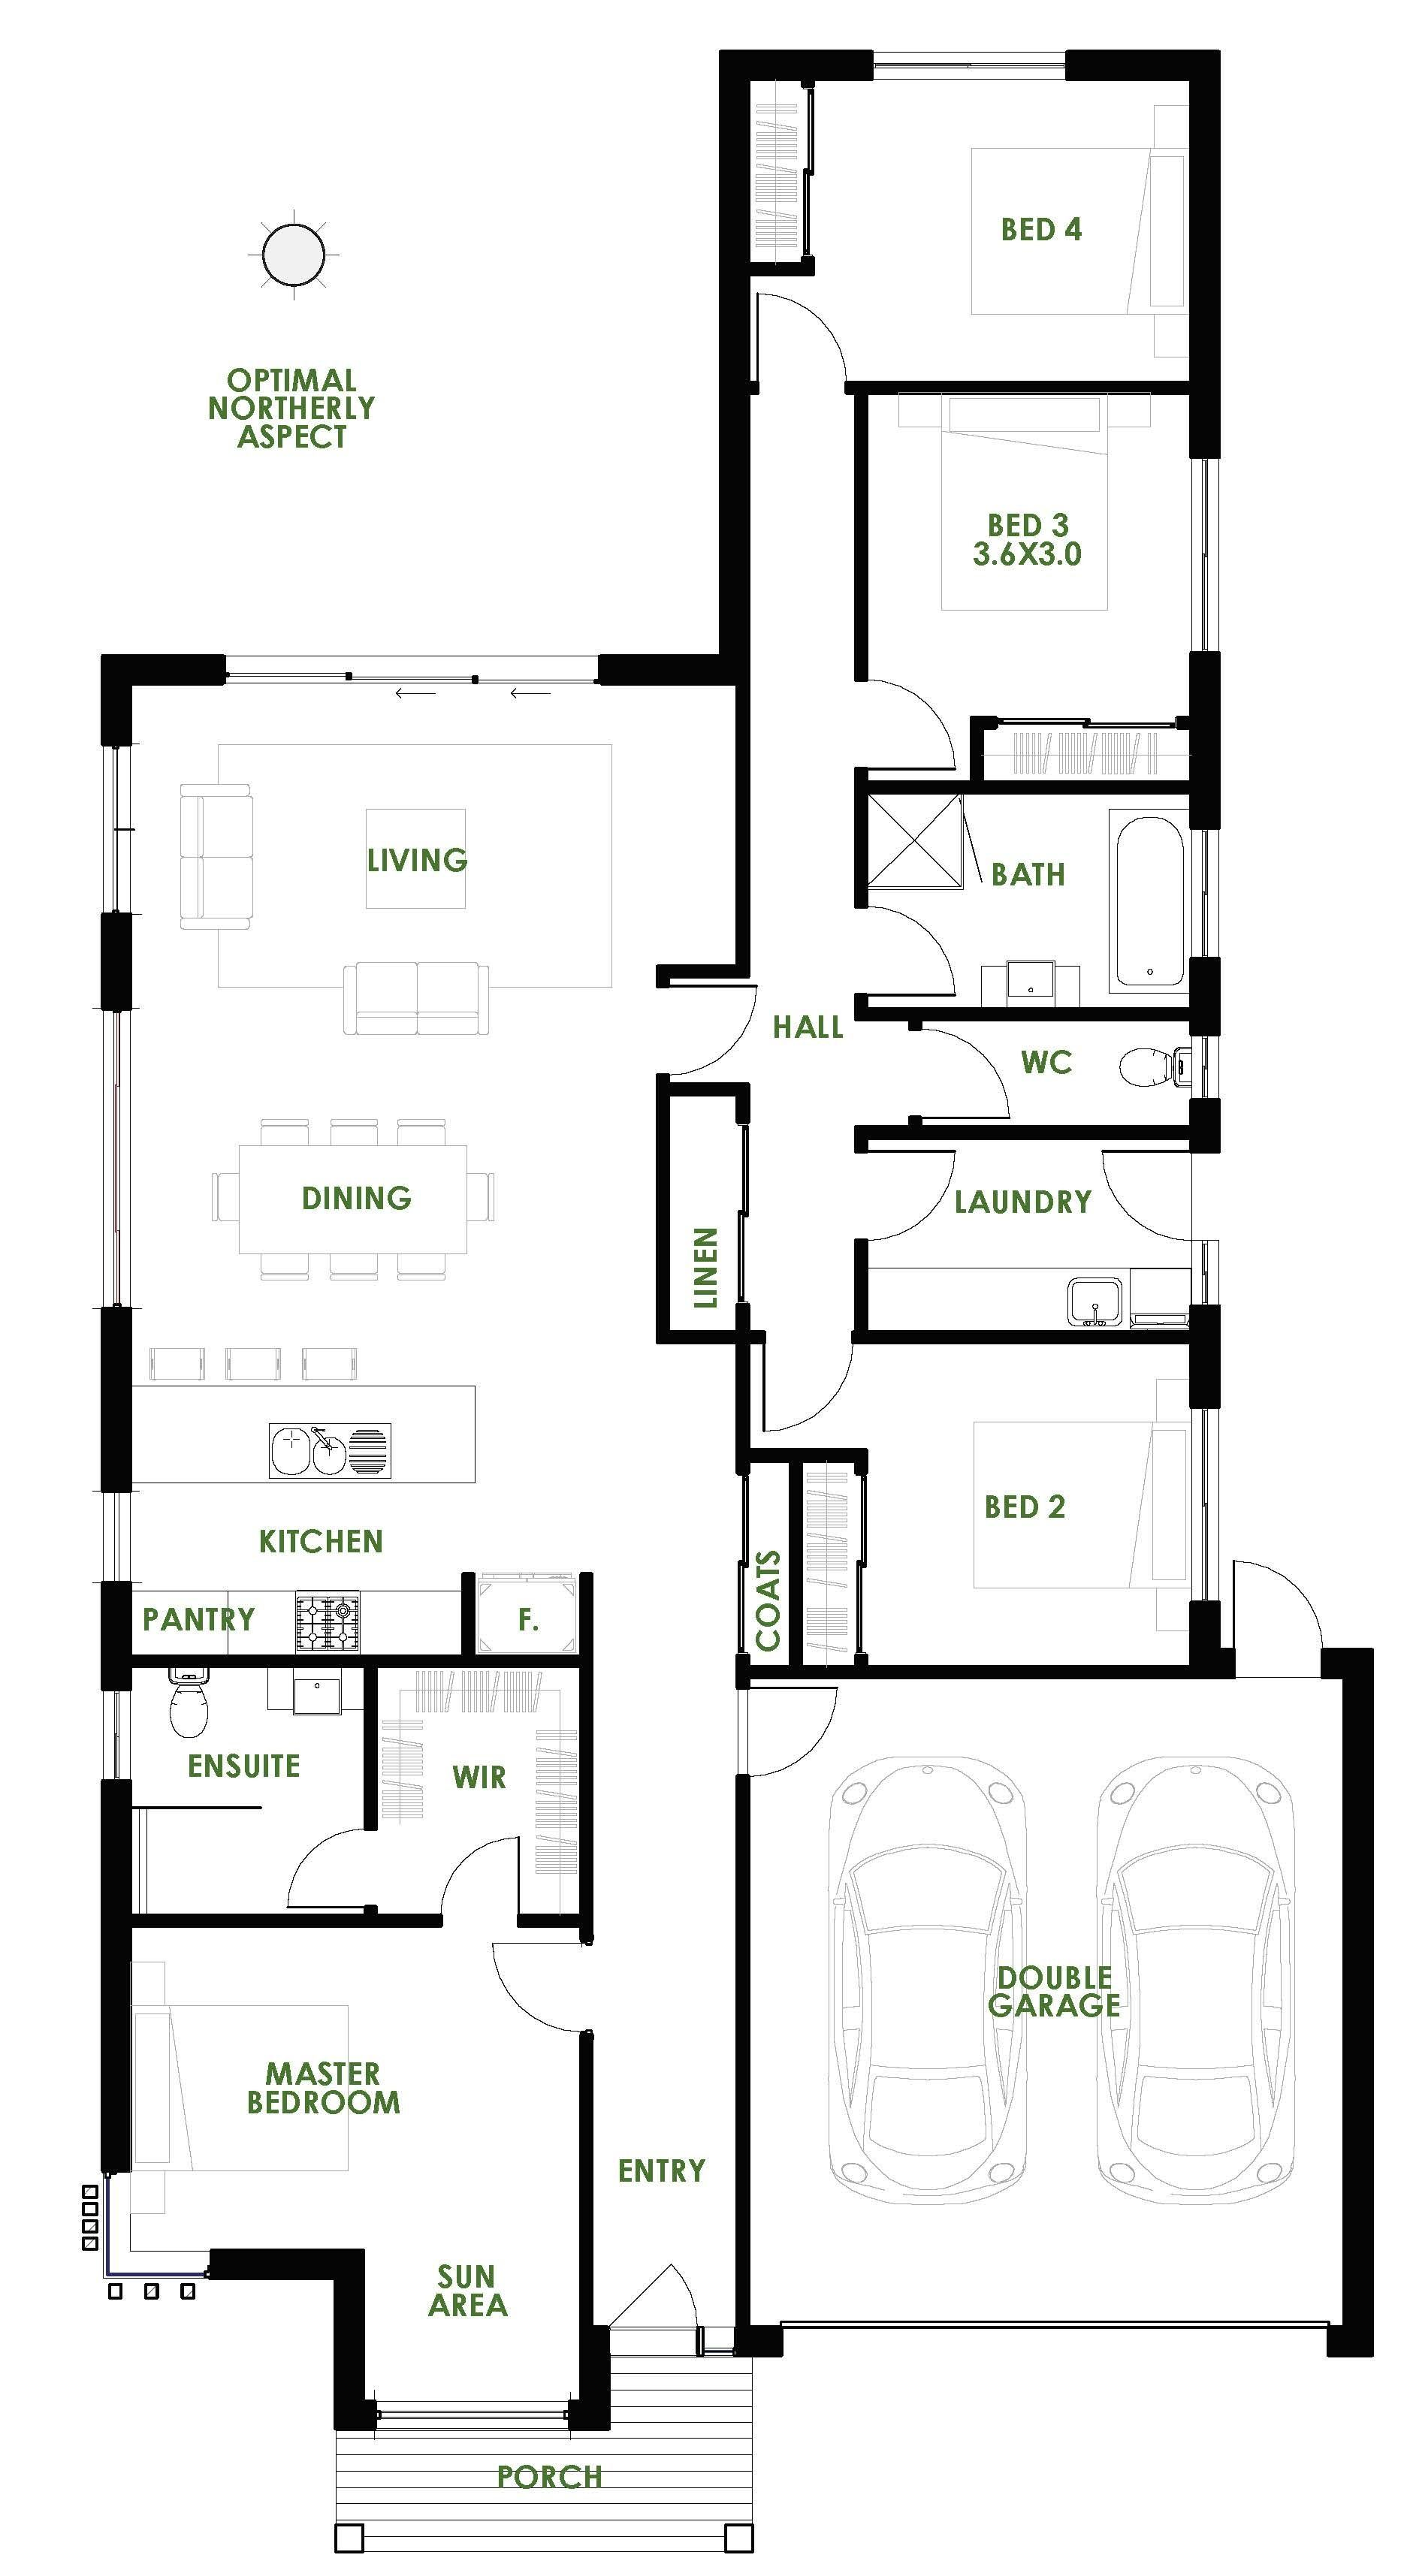 Energy Efficient House Designs Floor Plans Savinghomeenergy